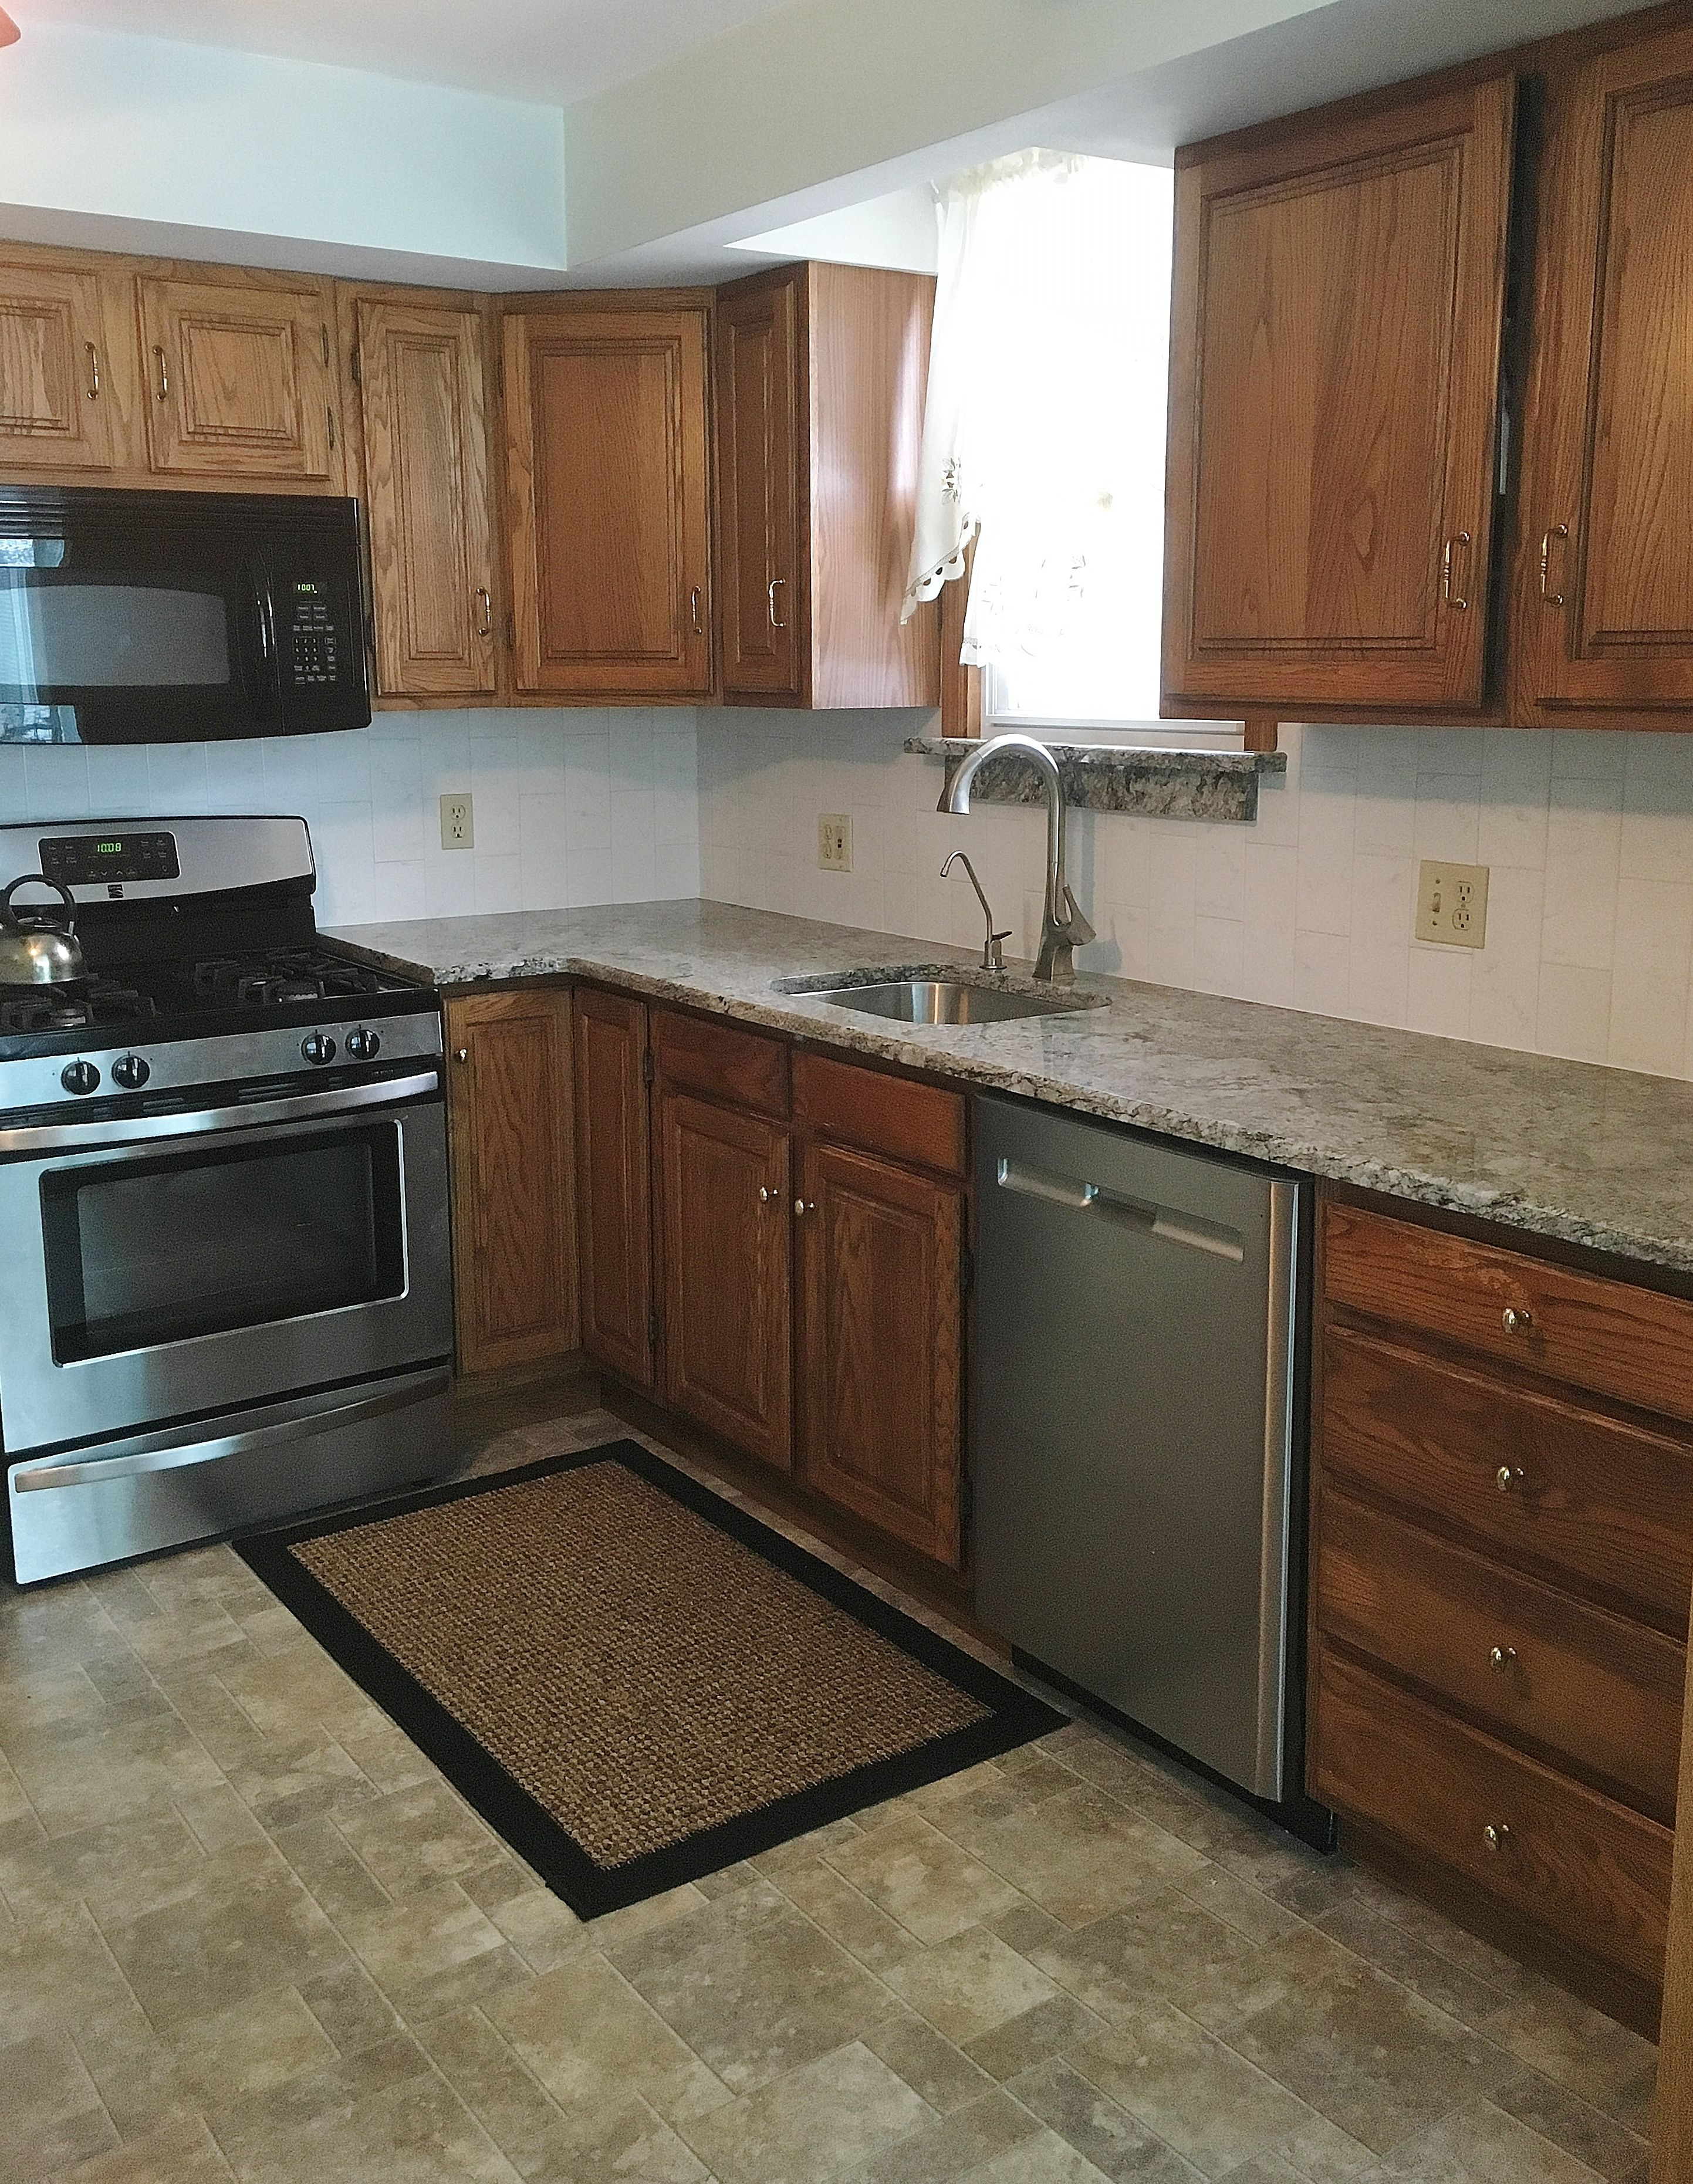 Small kitchen re-fresh by upgrading old laminate for new Blue Dunes ...